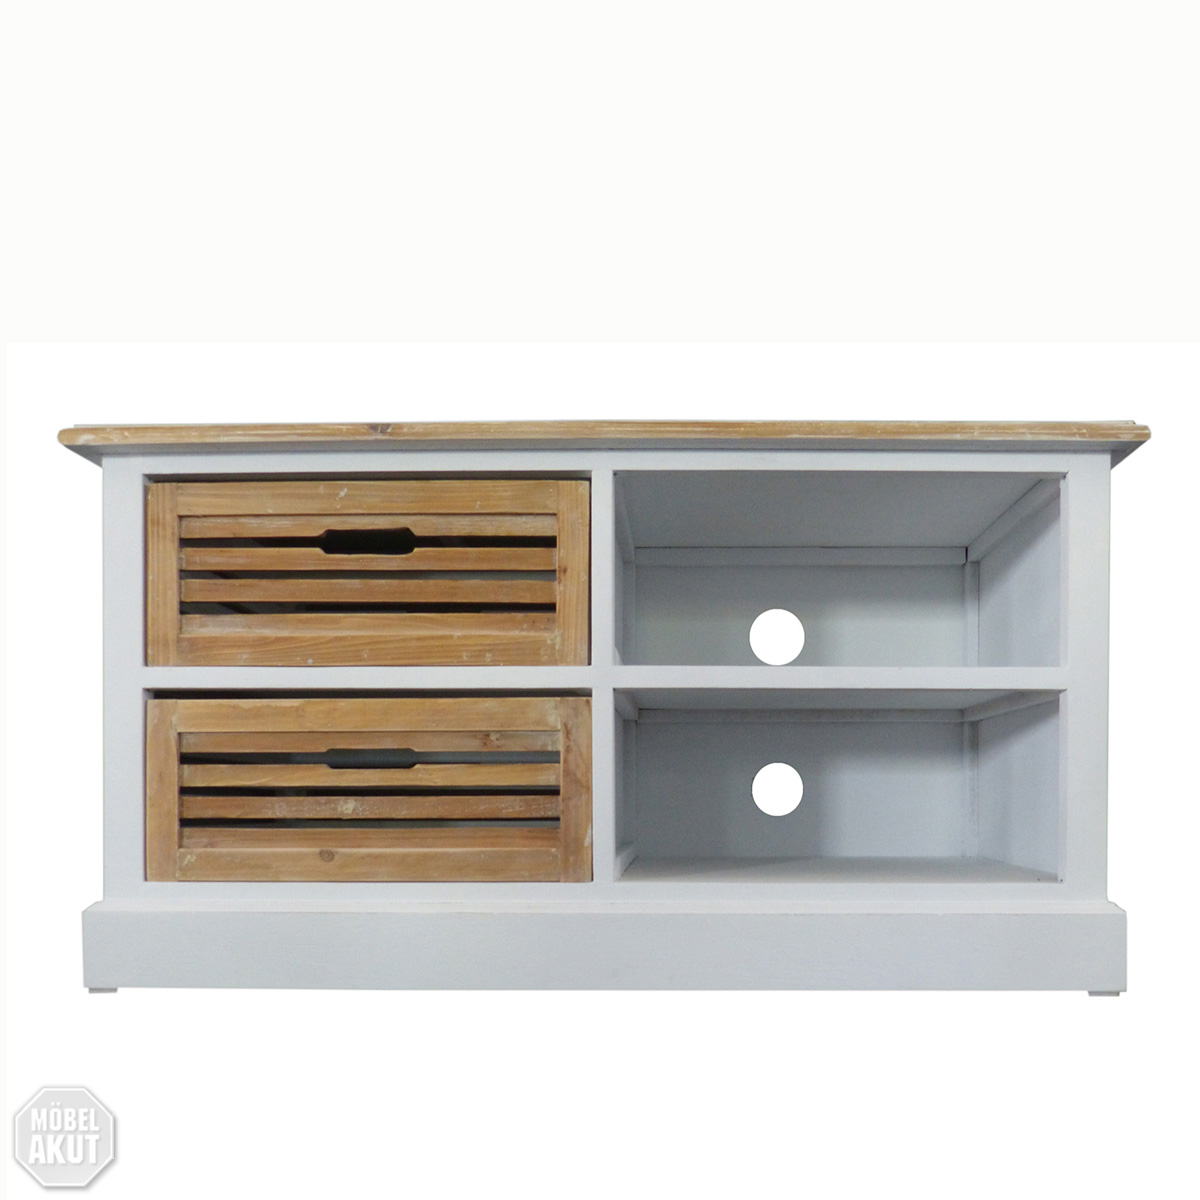 lowboard 1 paris tv board in paulownia holz weiss vintage. Black Bedroom Furniture Sets. Home Design Ideas